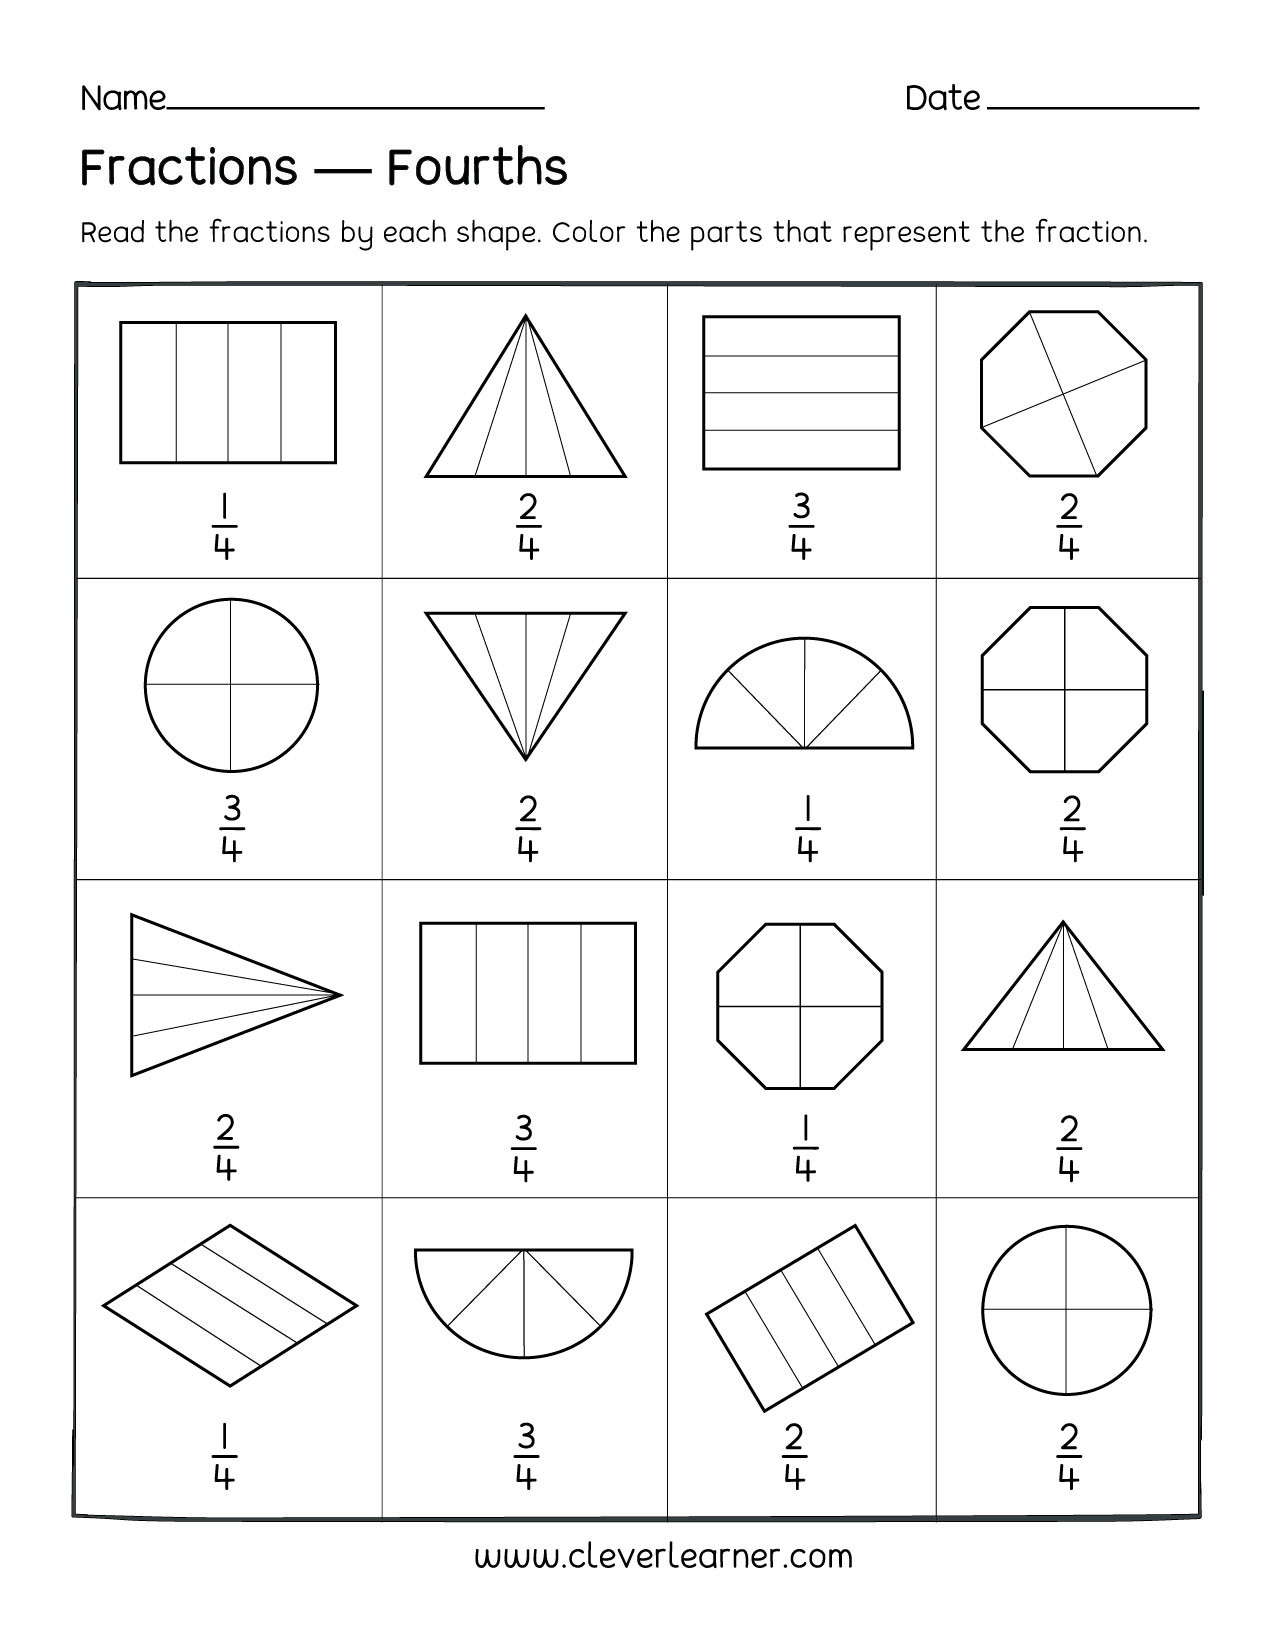 Fraction Worksheets First Grade Fun Activity On Fractions Fourths Worksheets for Children